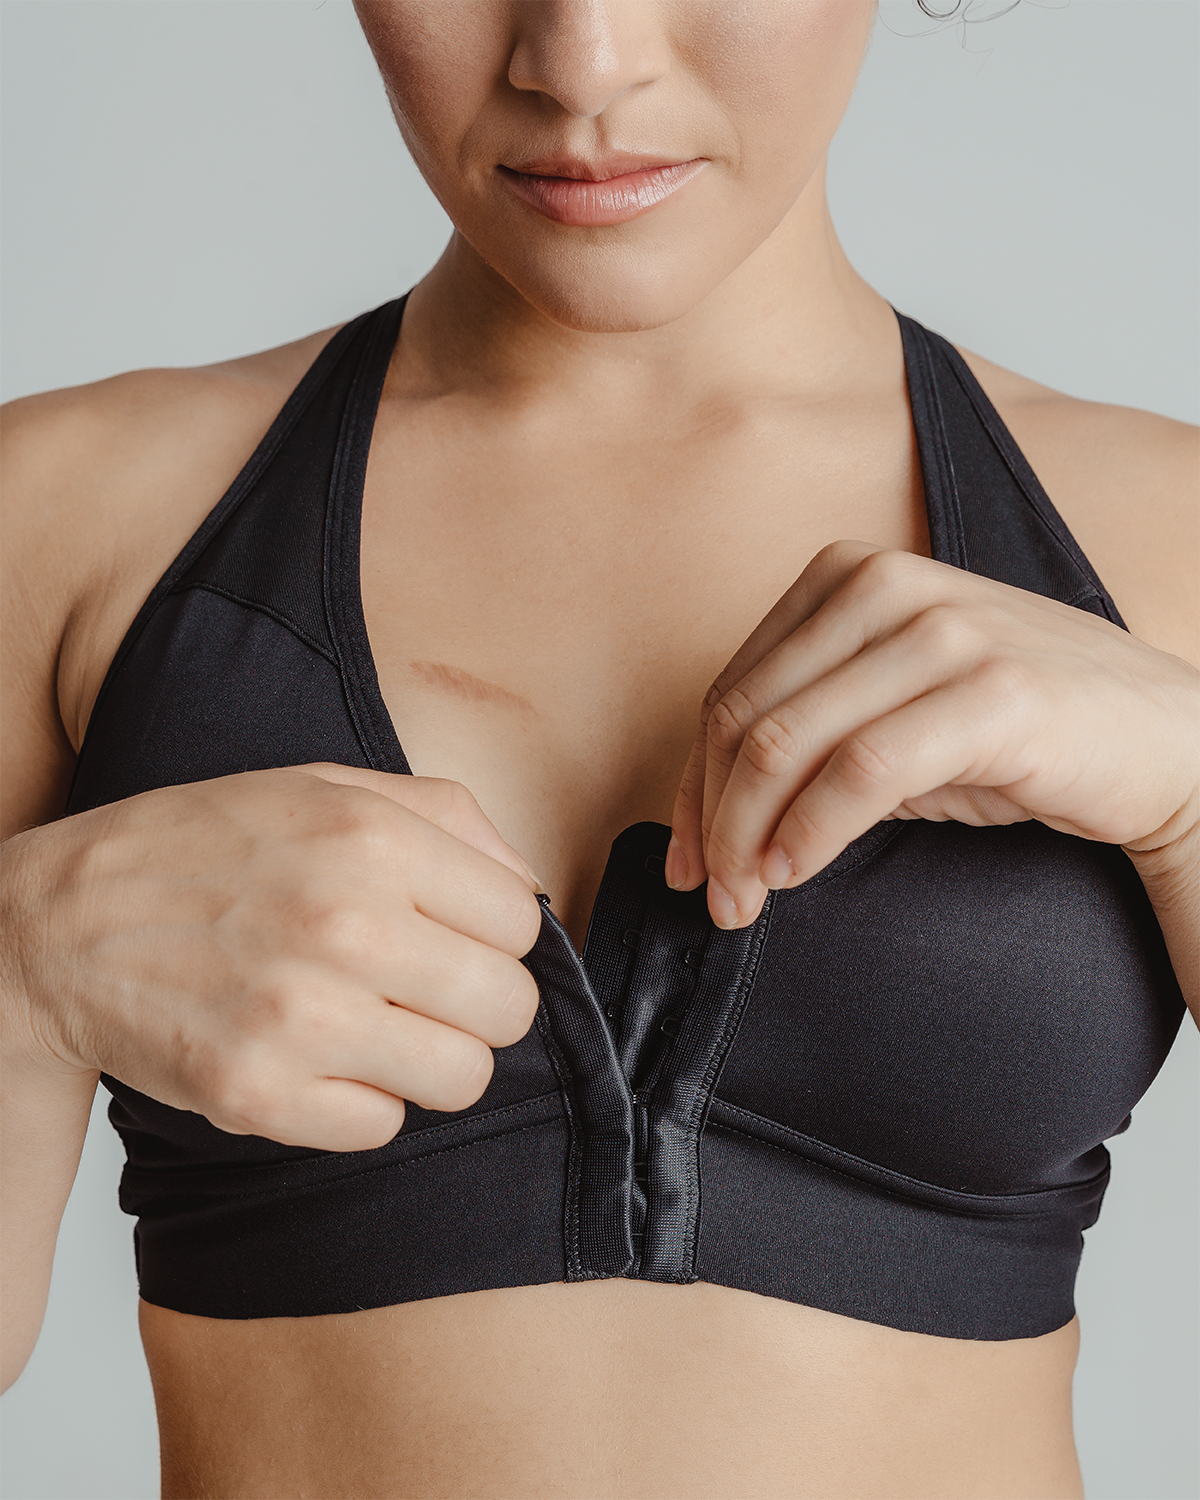 Black, pocketed front closure sports bra with soft wireless cups, adjustable straps and mesh paneling on cross back, on a flap reconstructed model.